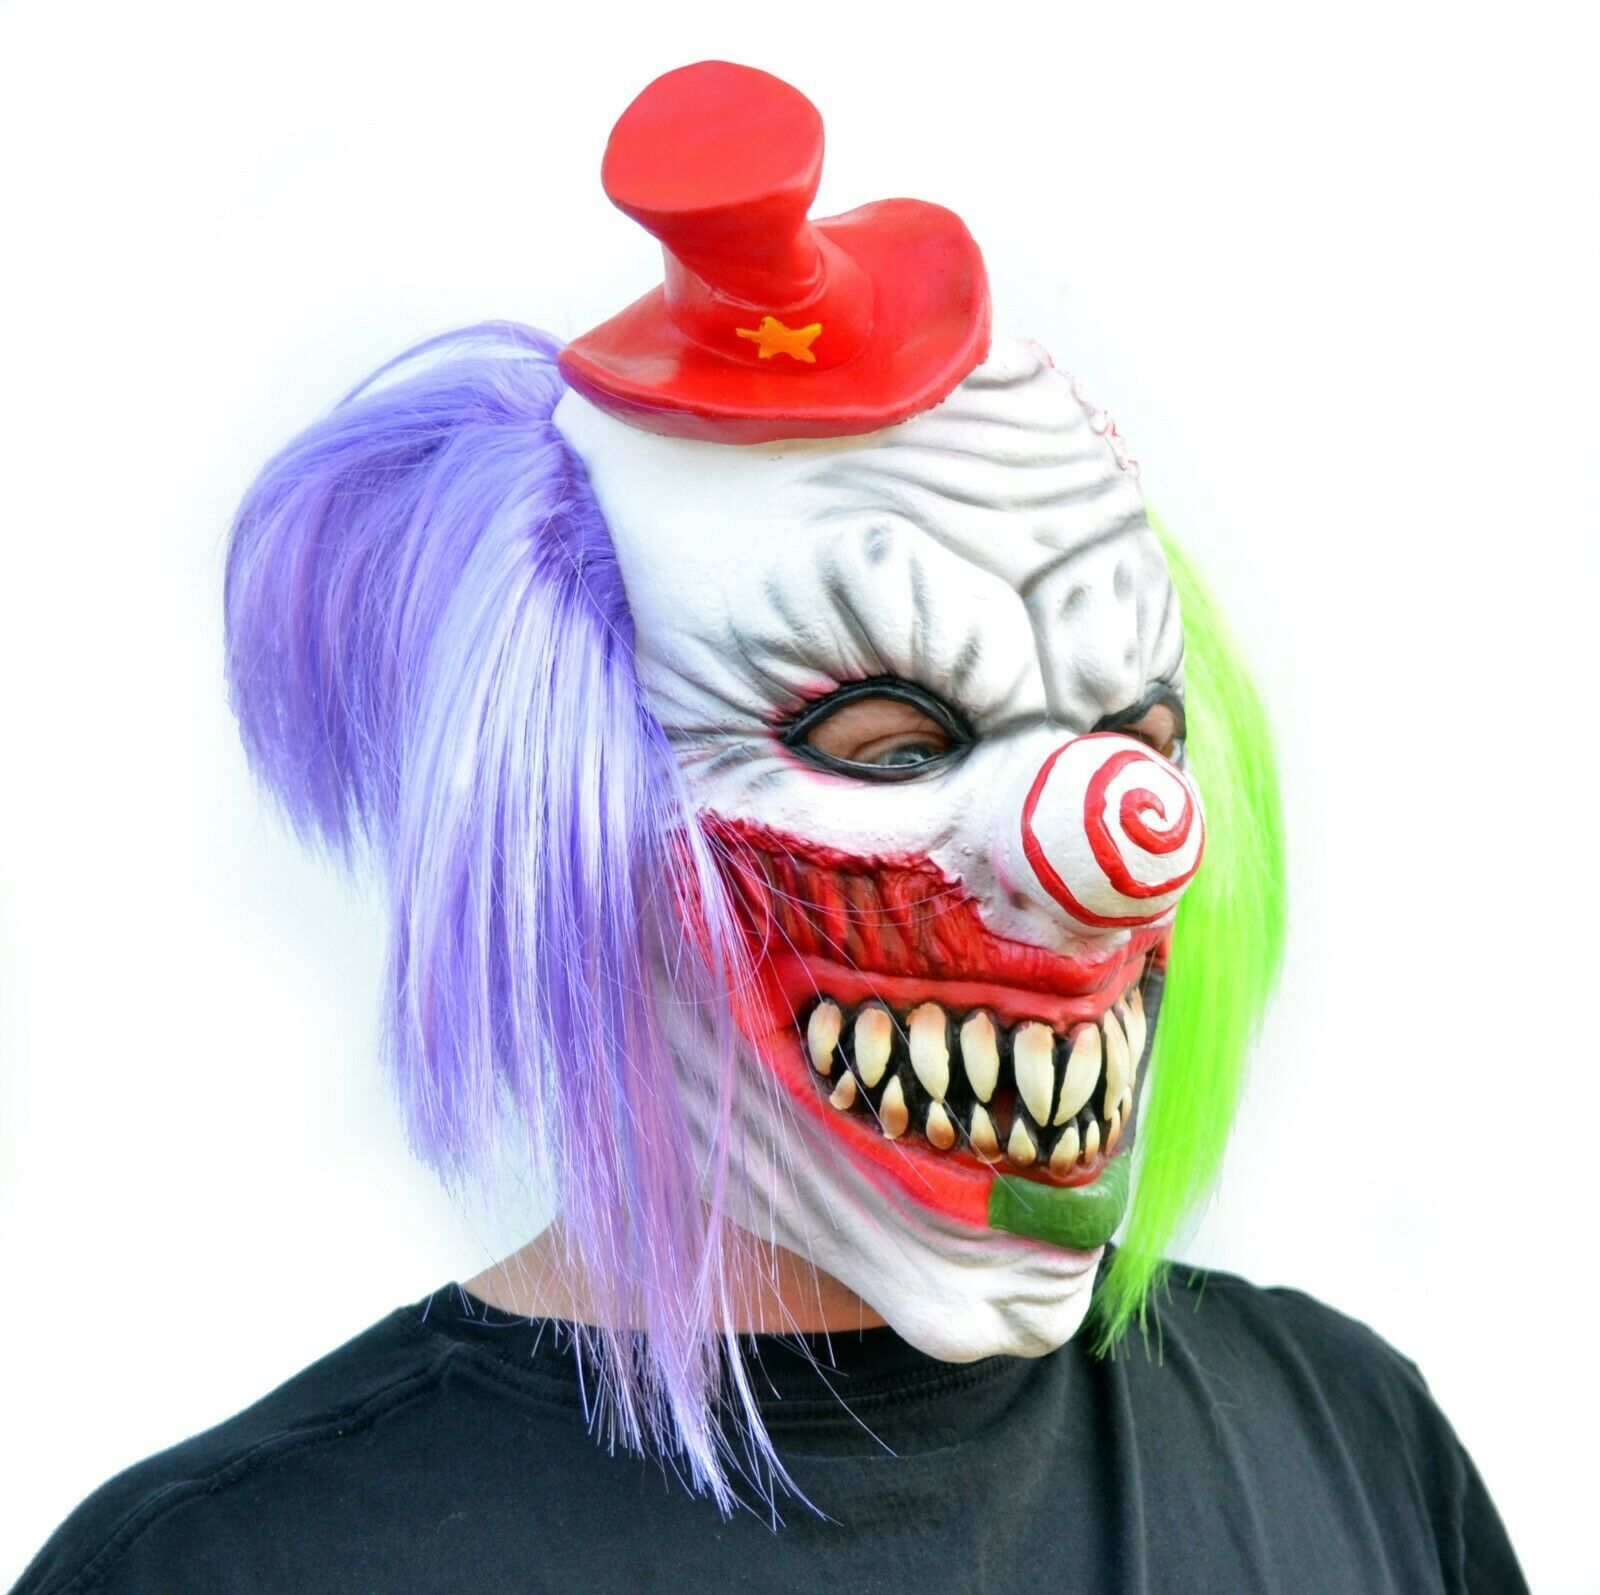 Evil Halloween Clown Mask Costume Party Mask with Hair Killer Psycho the Clown image 2